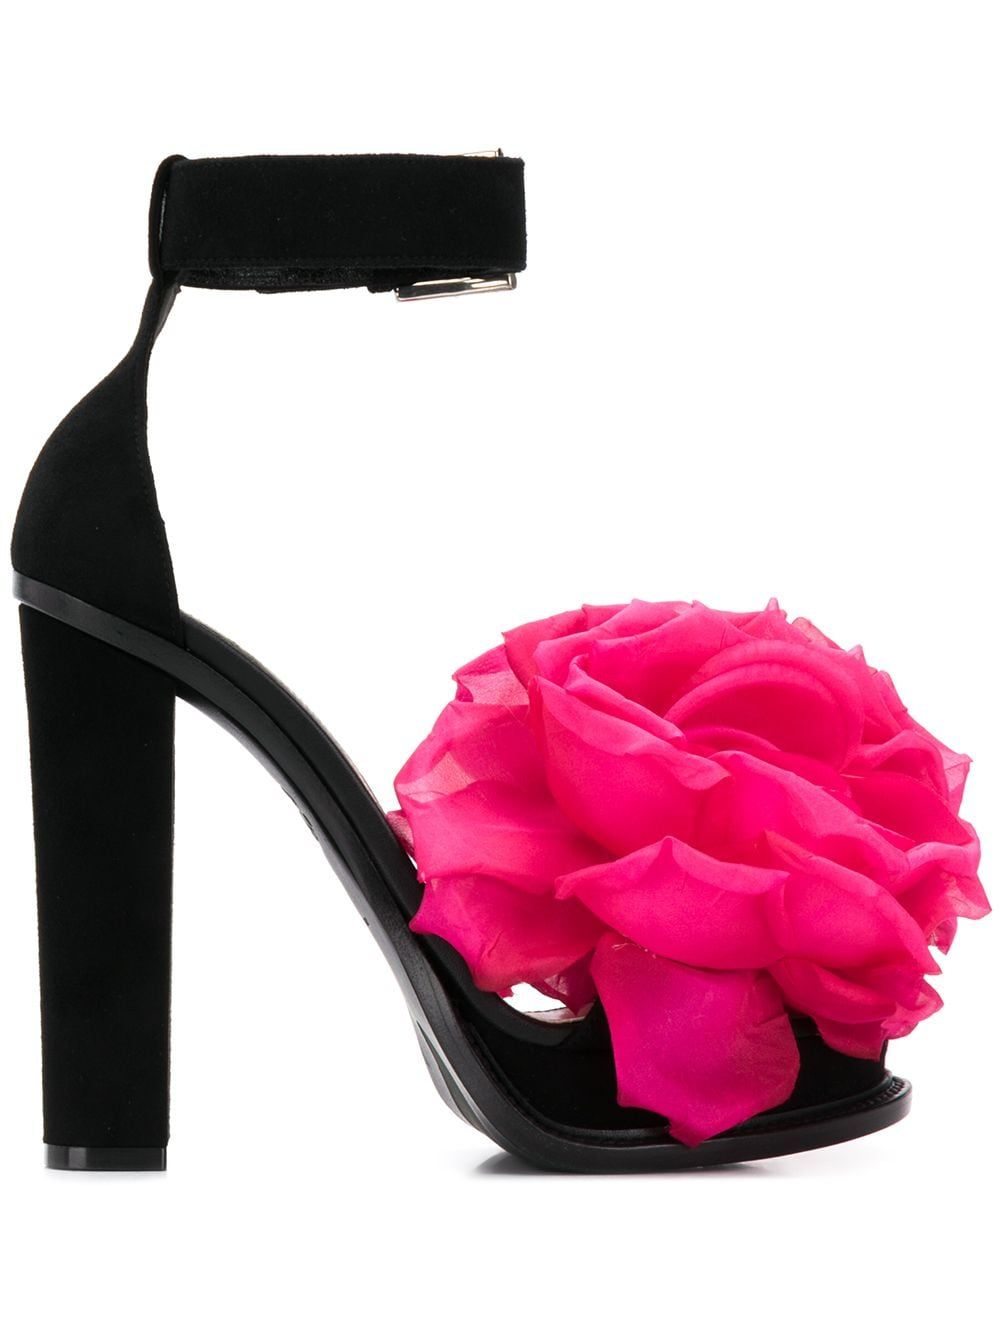 Alexander McQueen Flower Appliqué Sandals - Farfetch